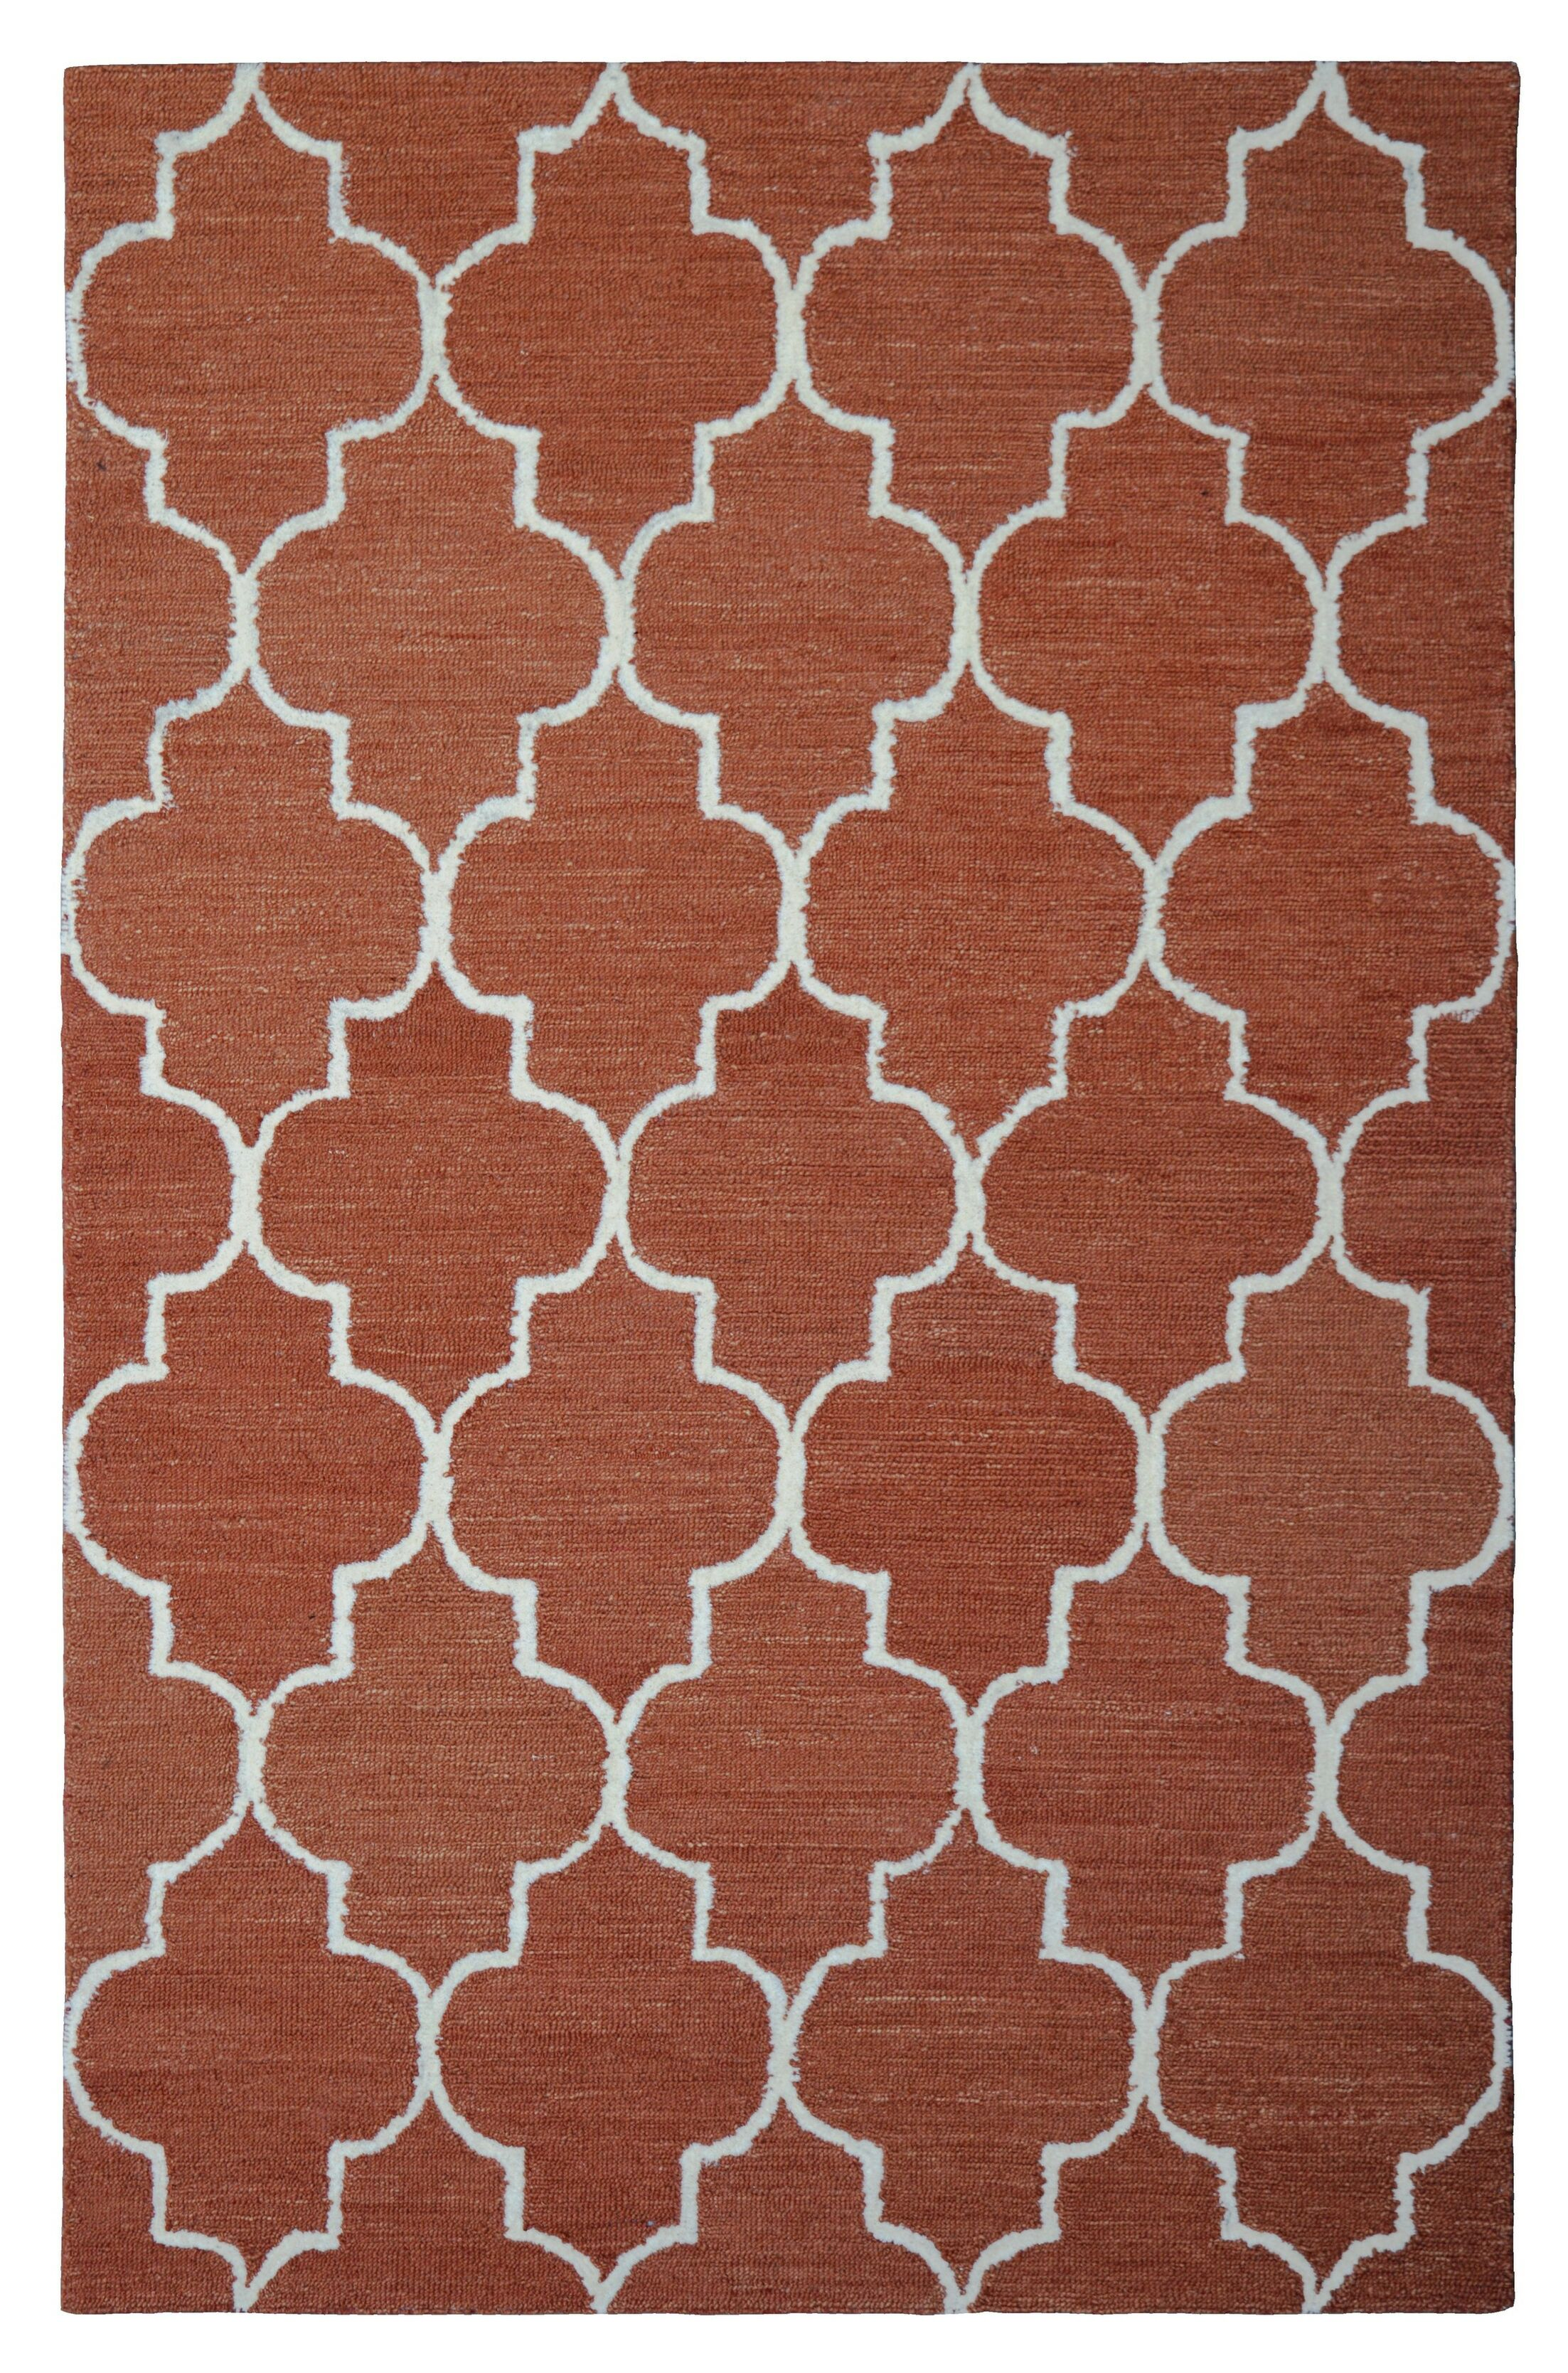 Wool Hand-Tufted Rust/Ivory Area Rug Rug Size: 5' x 8'